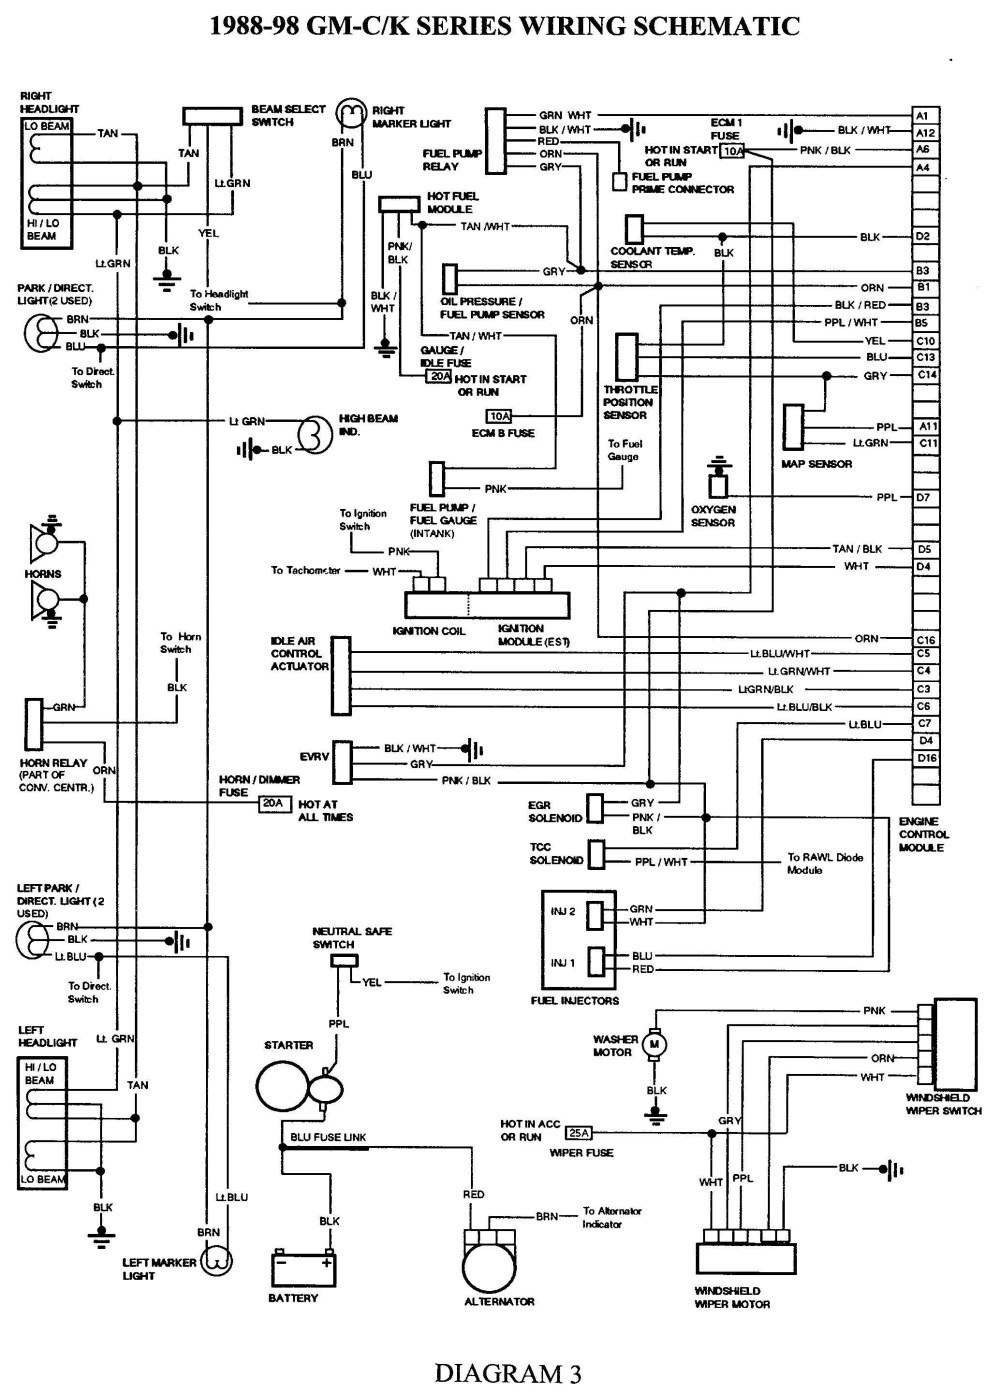 medium resolution of buick lucerne wire schematic wiring diagram forward 2006 buick lucerne wiring diagram buick lucerne wiring diagram